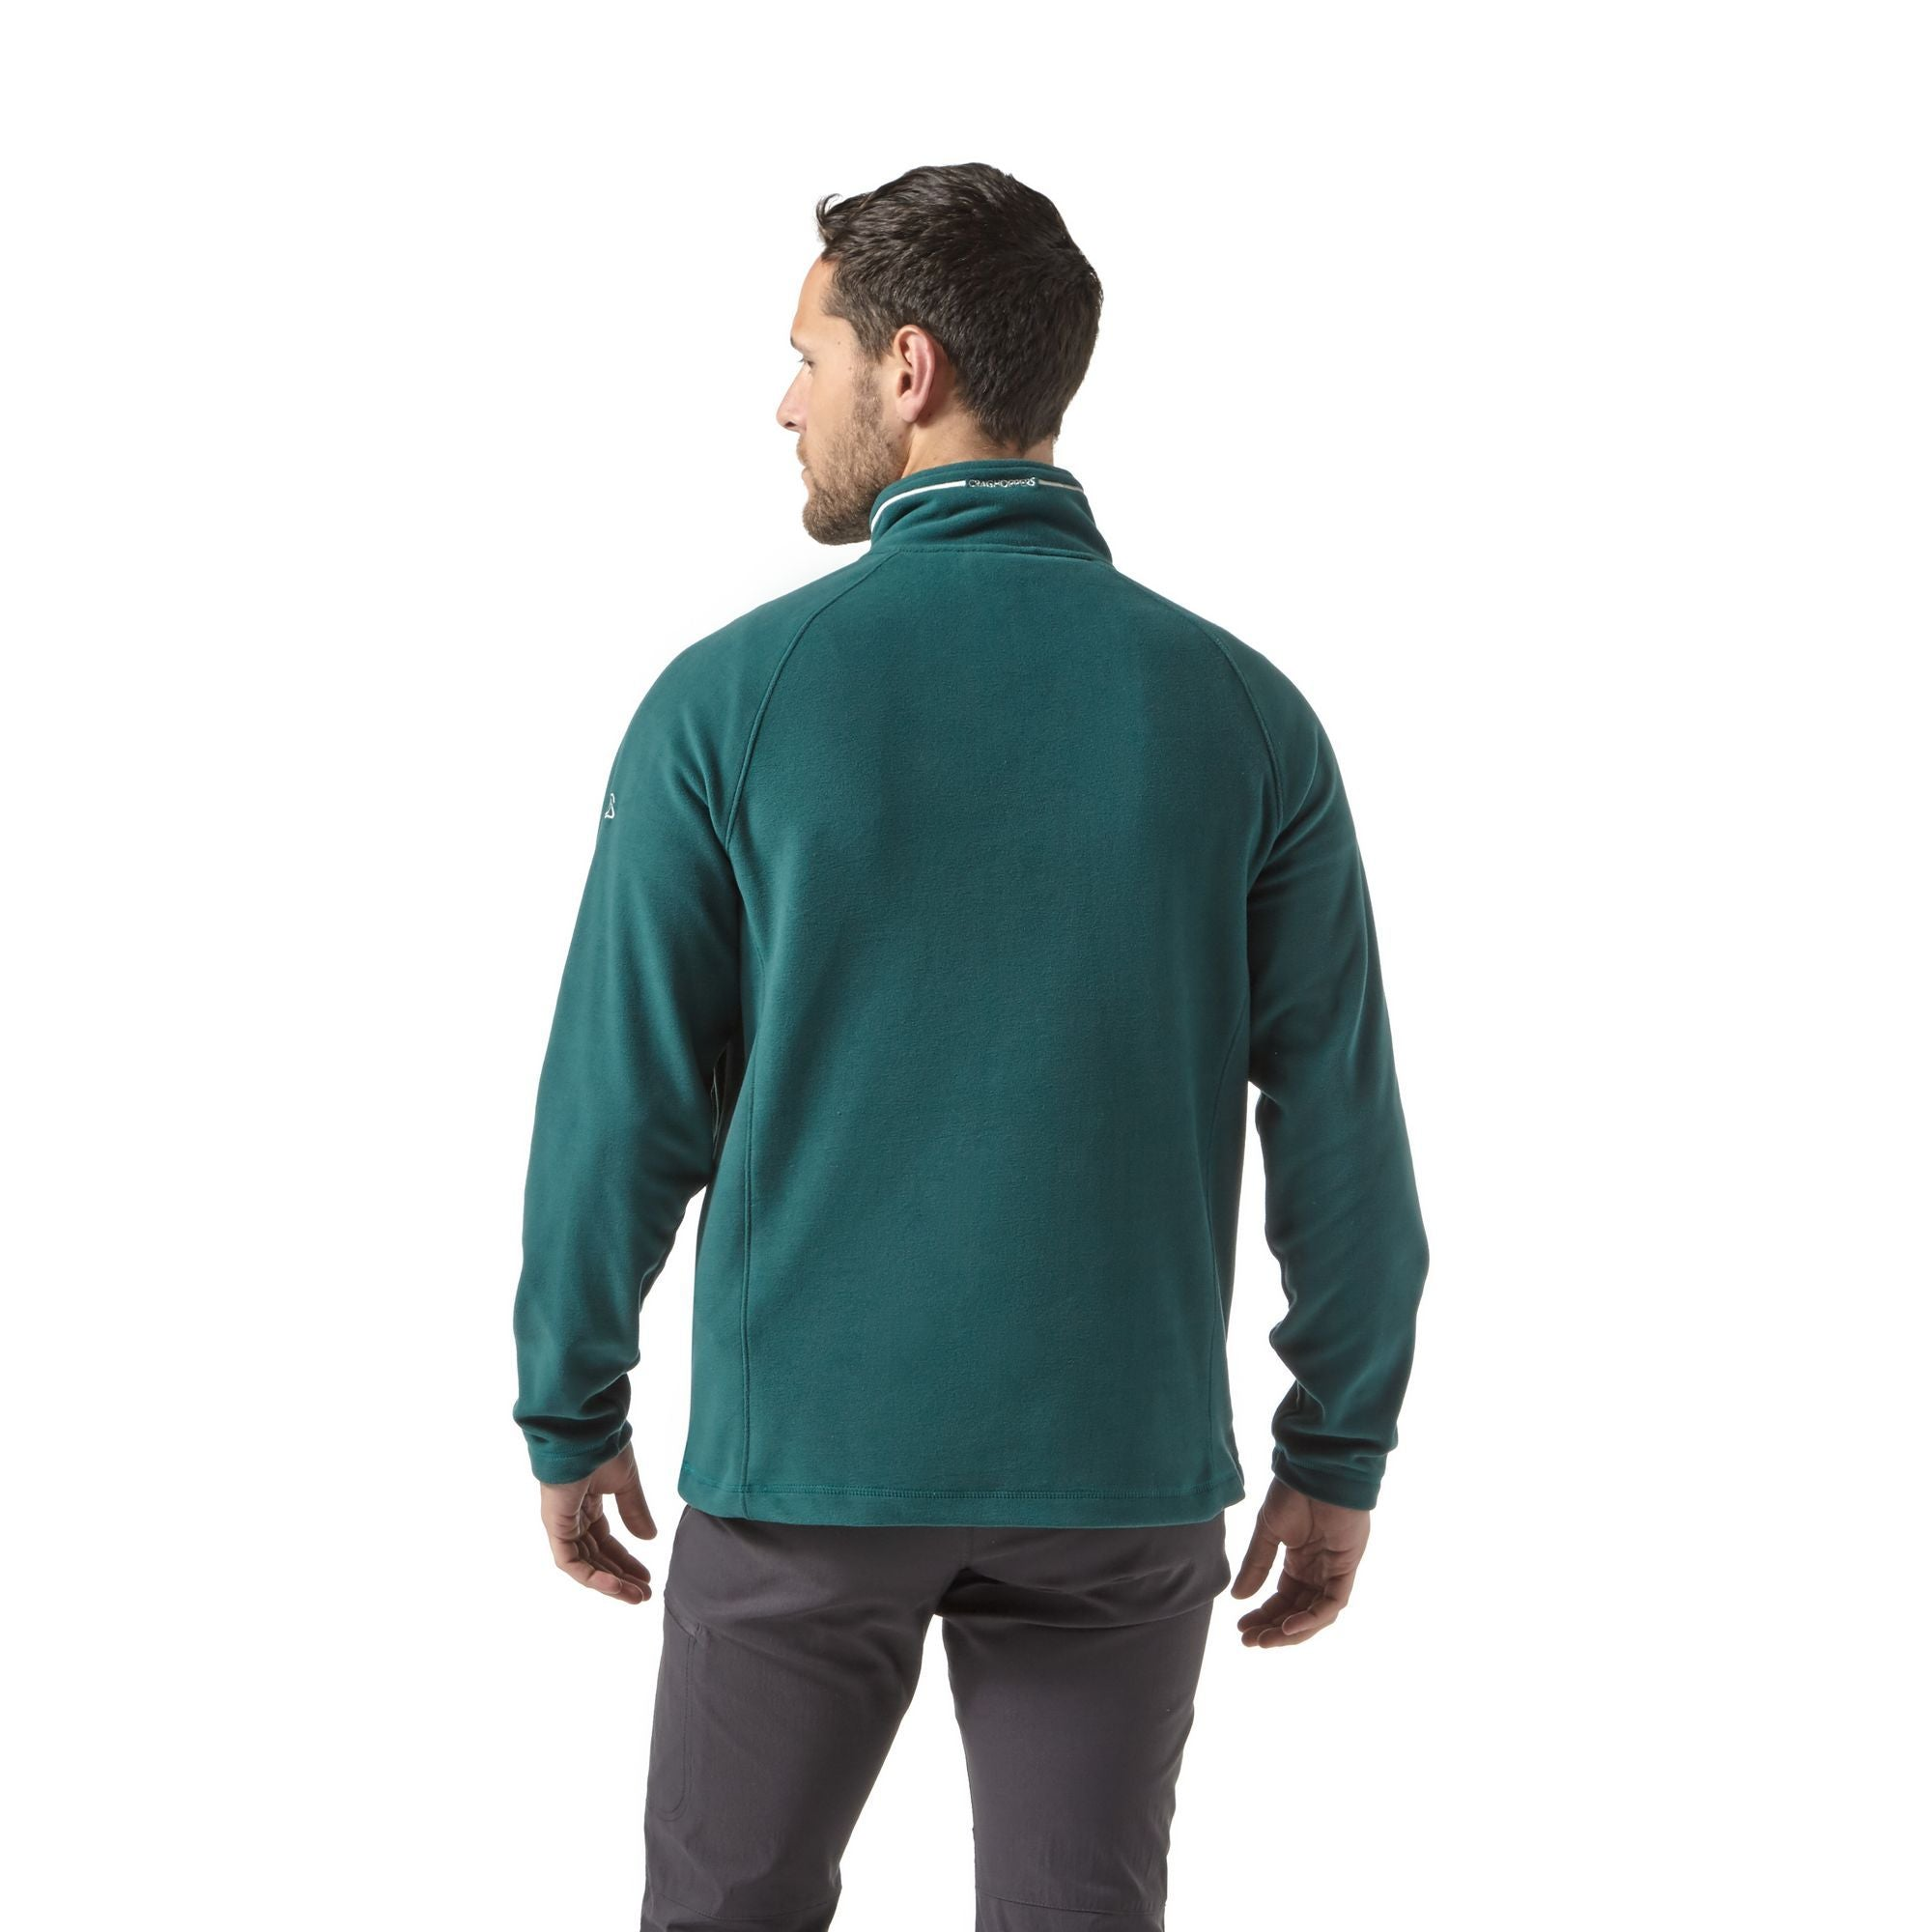 Craghoppers Corey Half Zip Fleece for Men in Mountain Green